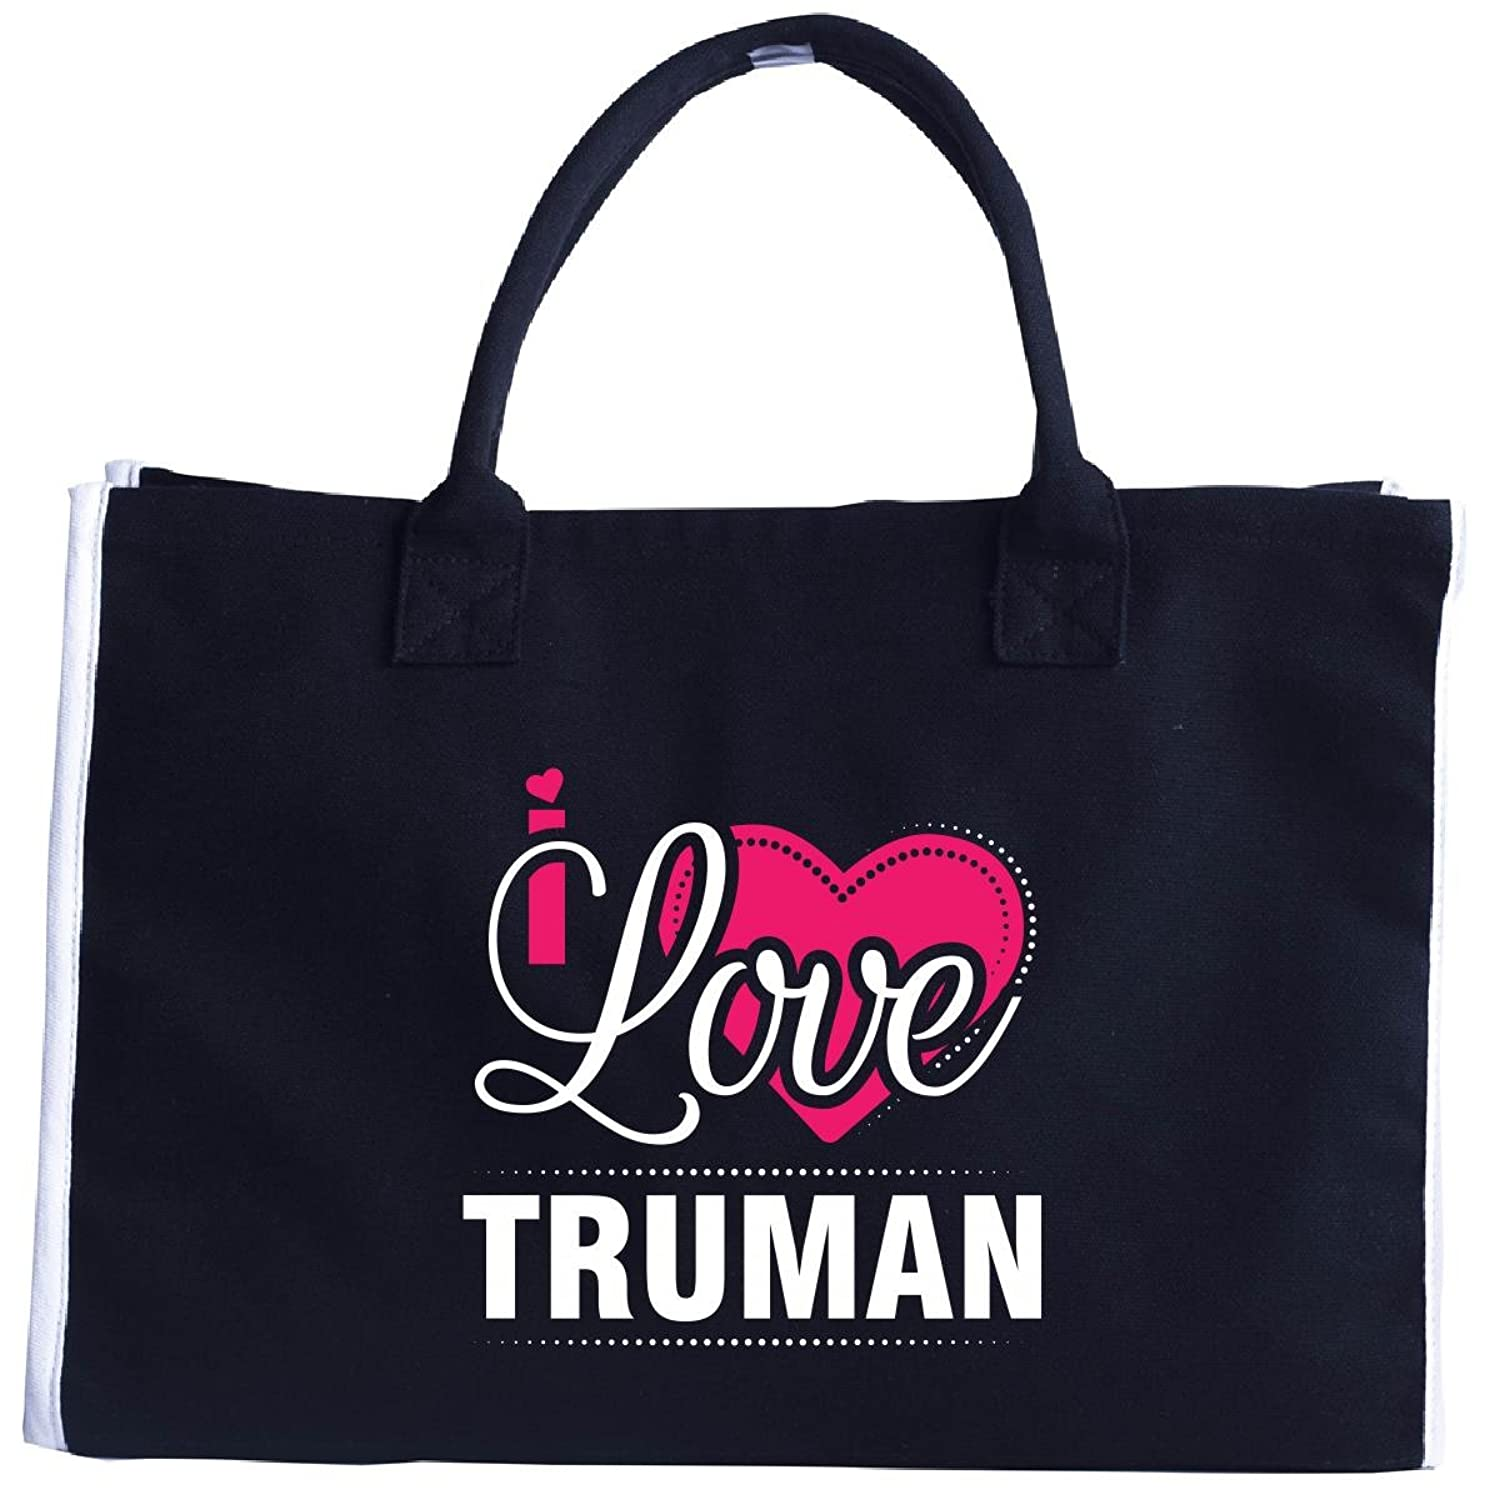 I Love Truman - Cool Gift For Truman From Girlfriend - Tote Bag